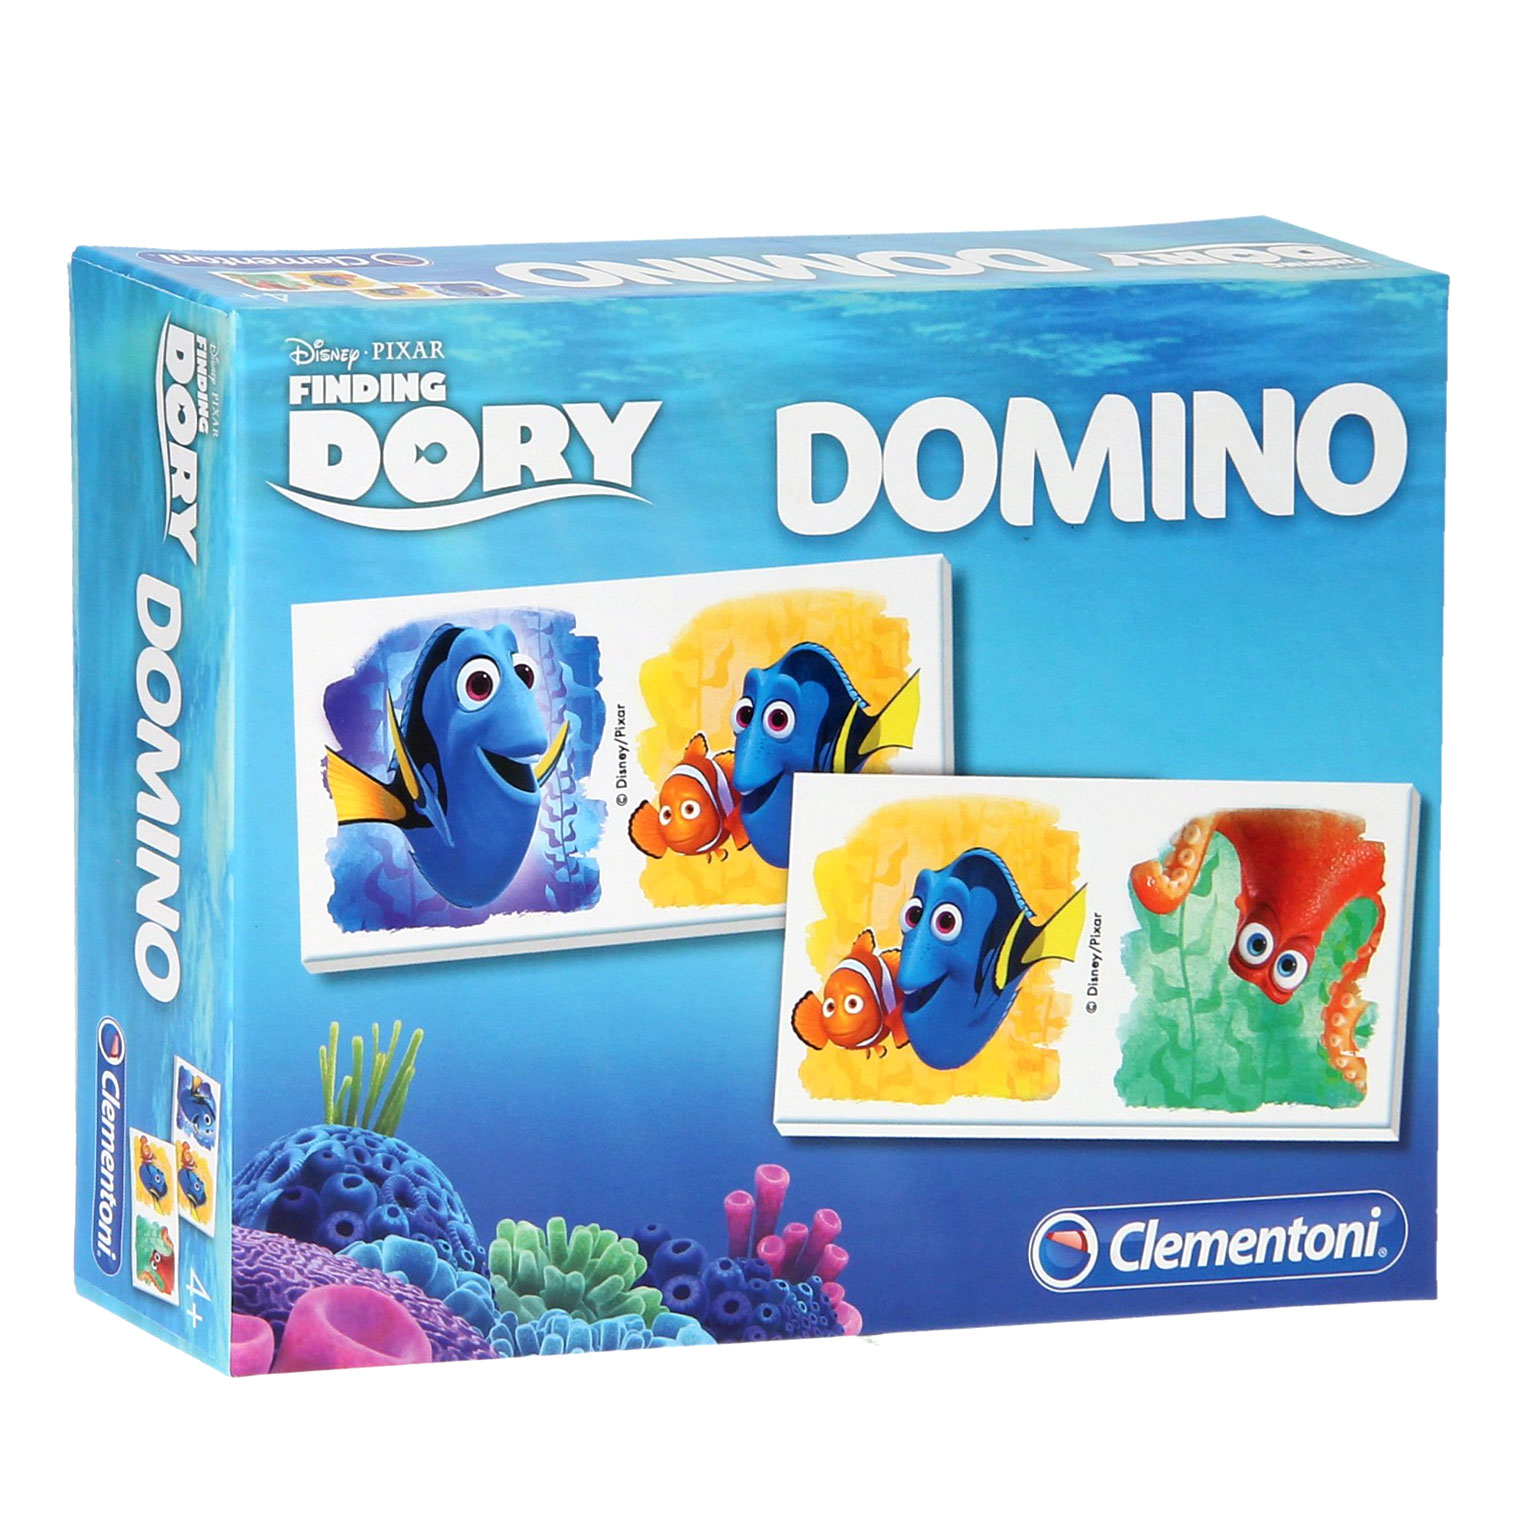 Finding Dory Domino